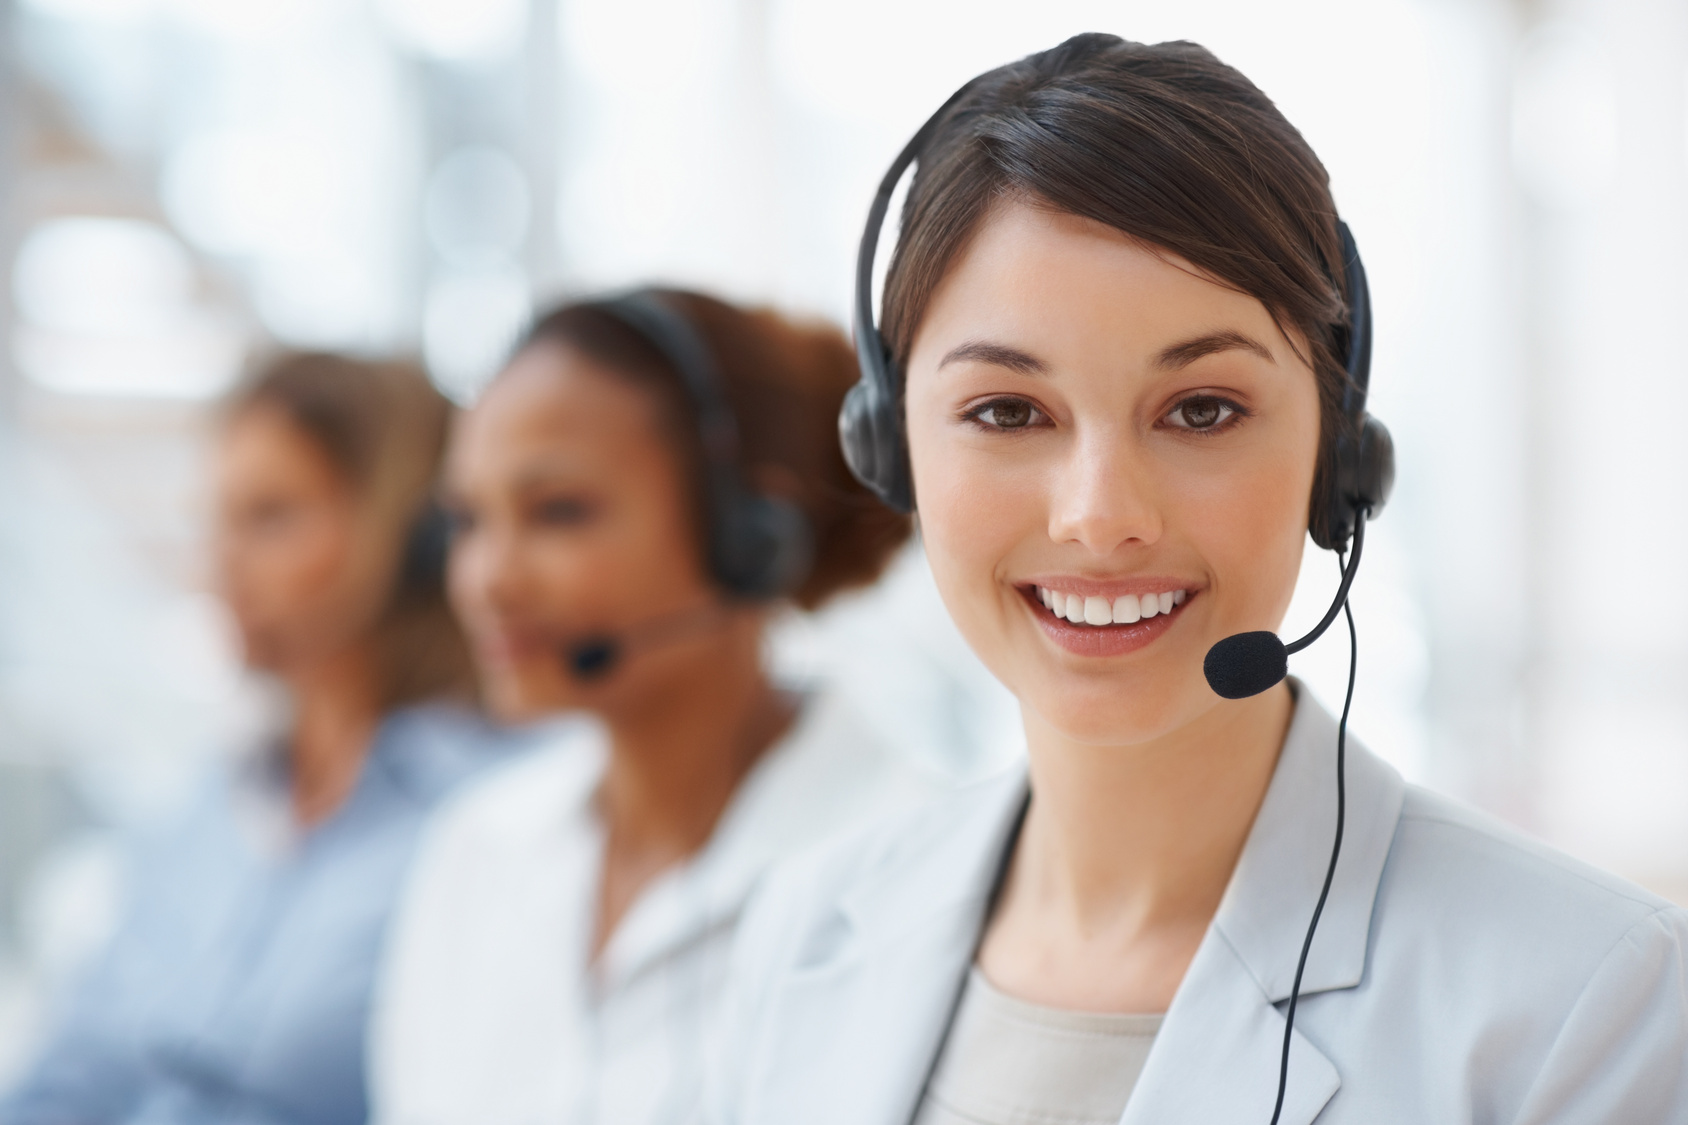 Copy of Closeup of a call center employee with headset at work